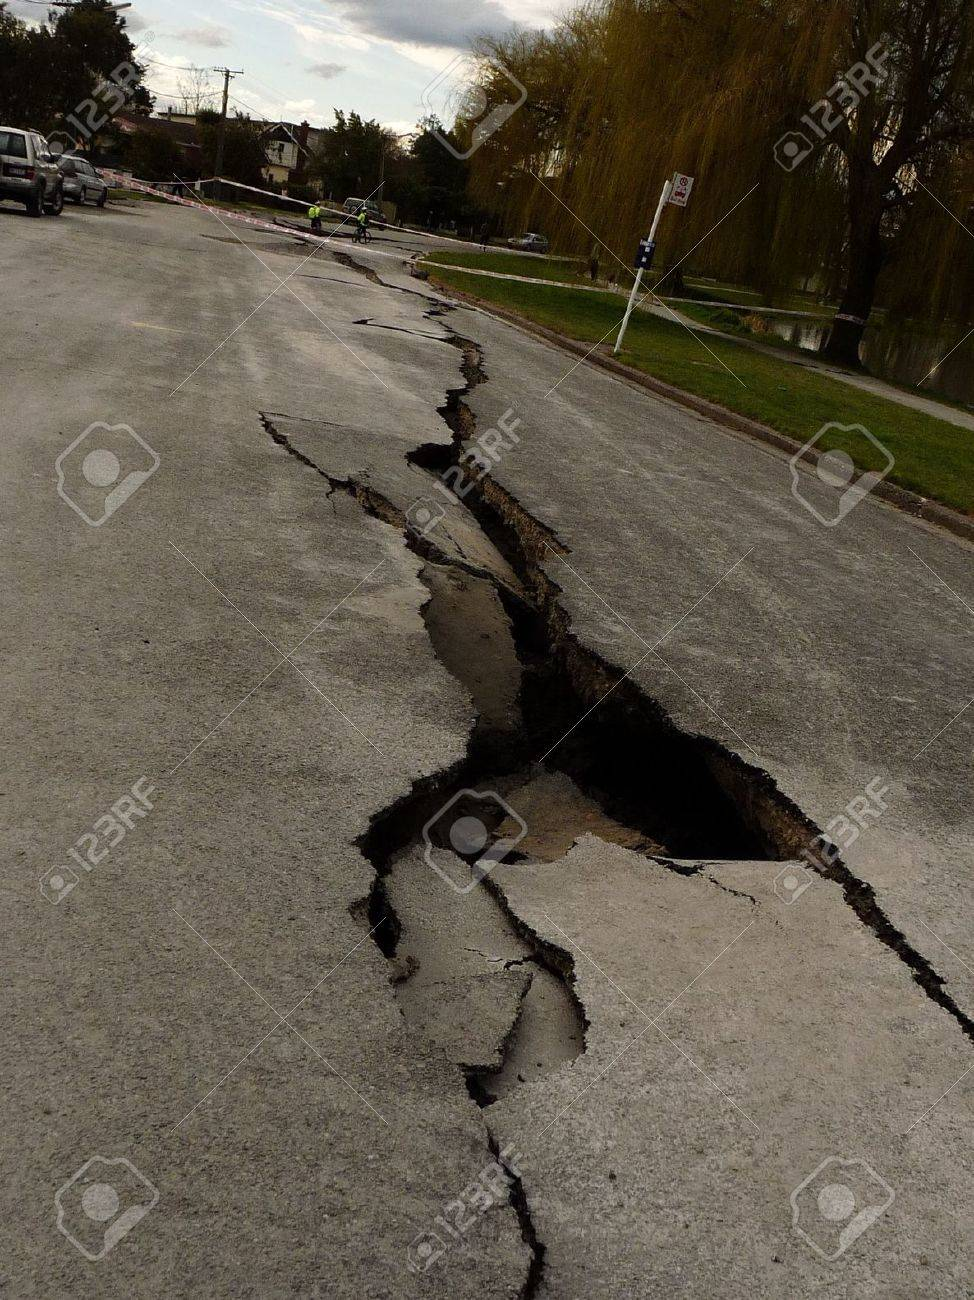 Christchurch, New Zealand, September 4 2010: Crack through road from Earthquake by Avon River Stock Photo - 7738833